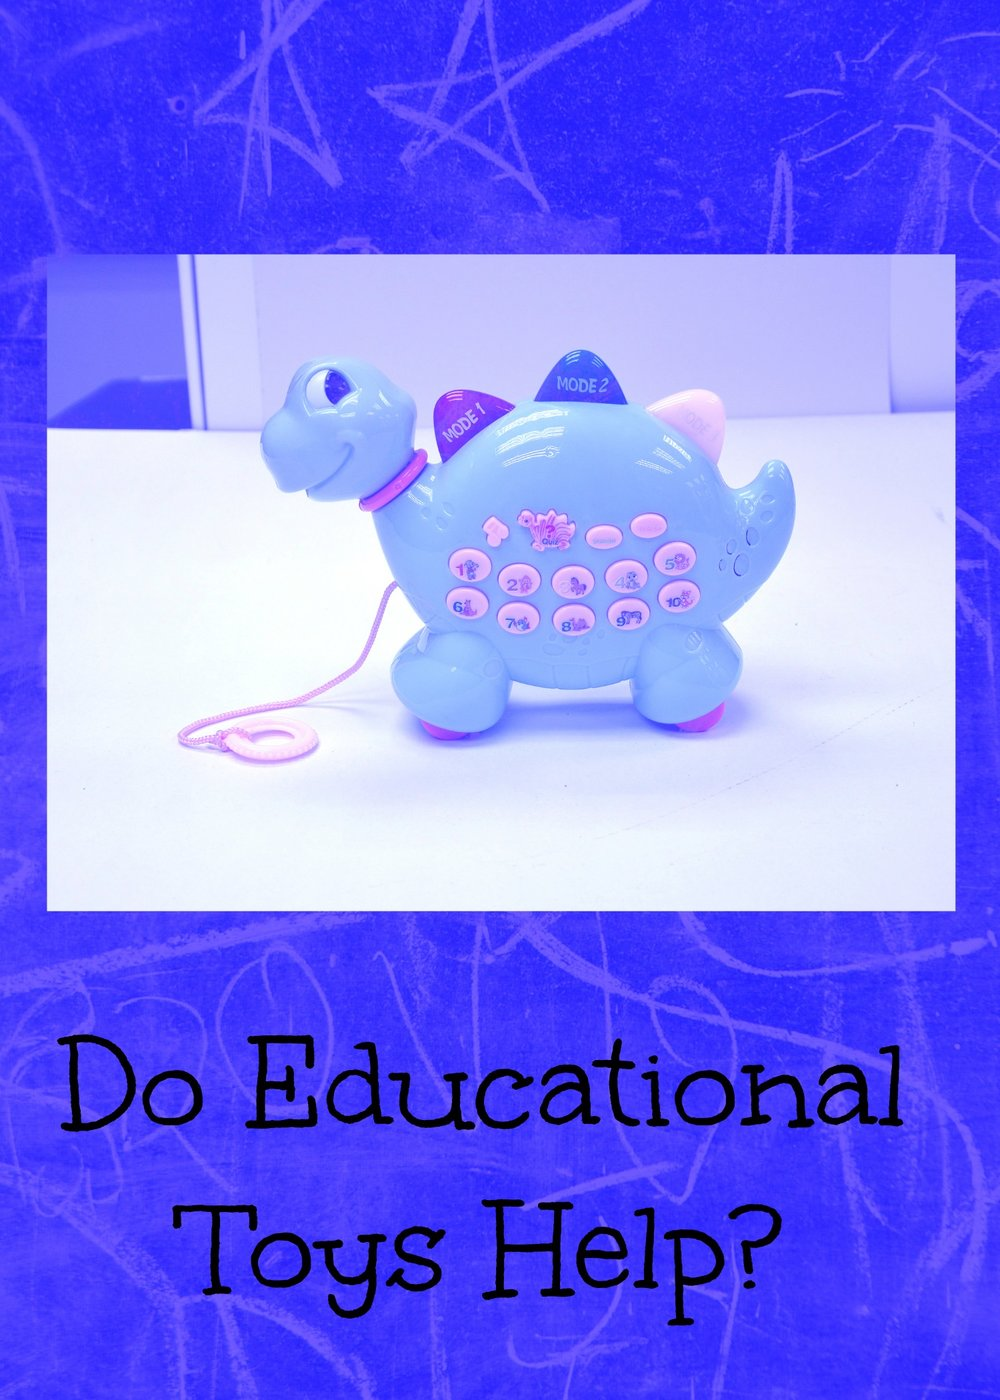 doeducationaltoyshelp